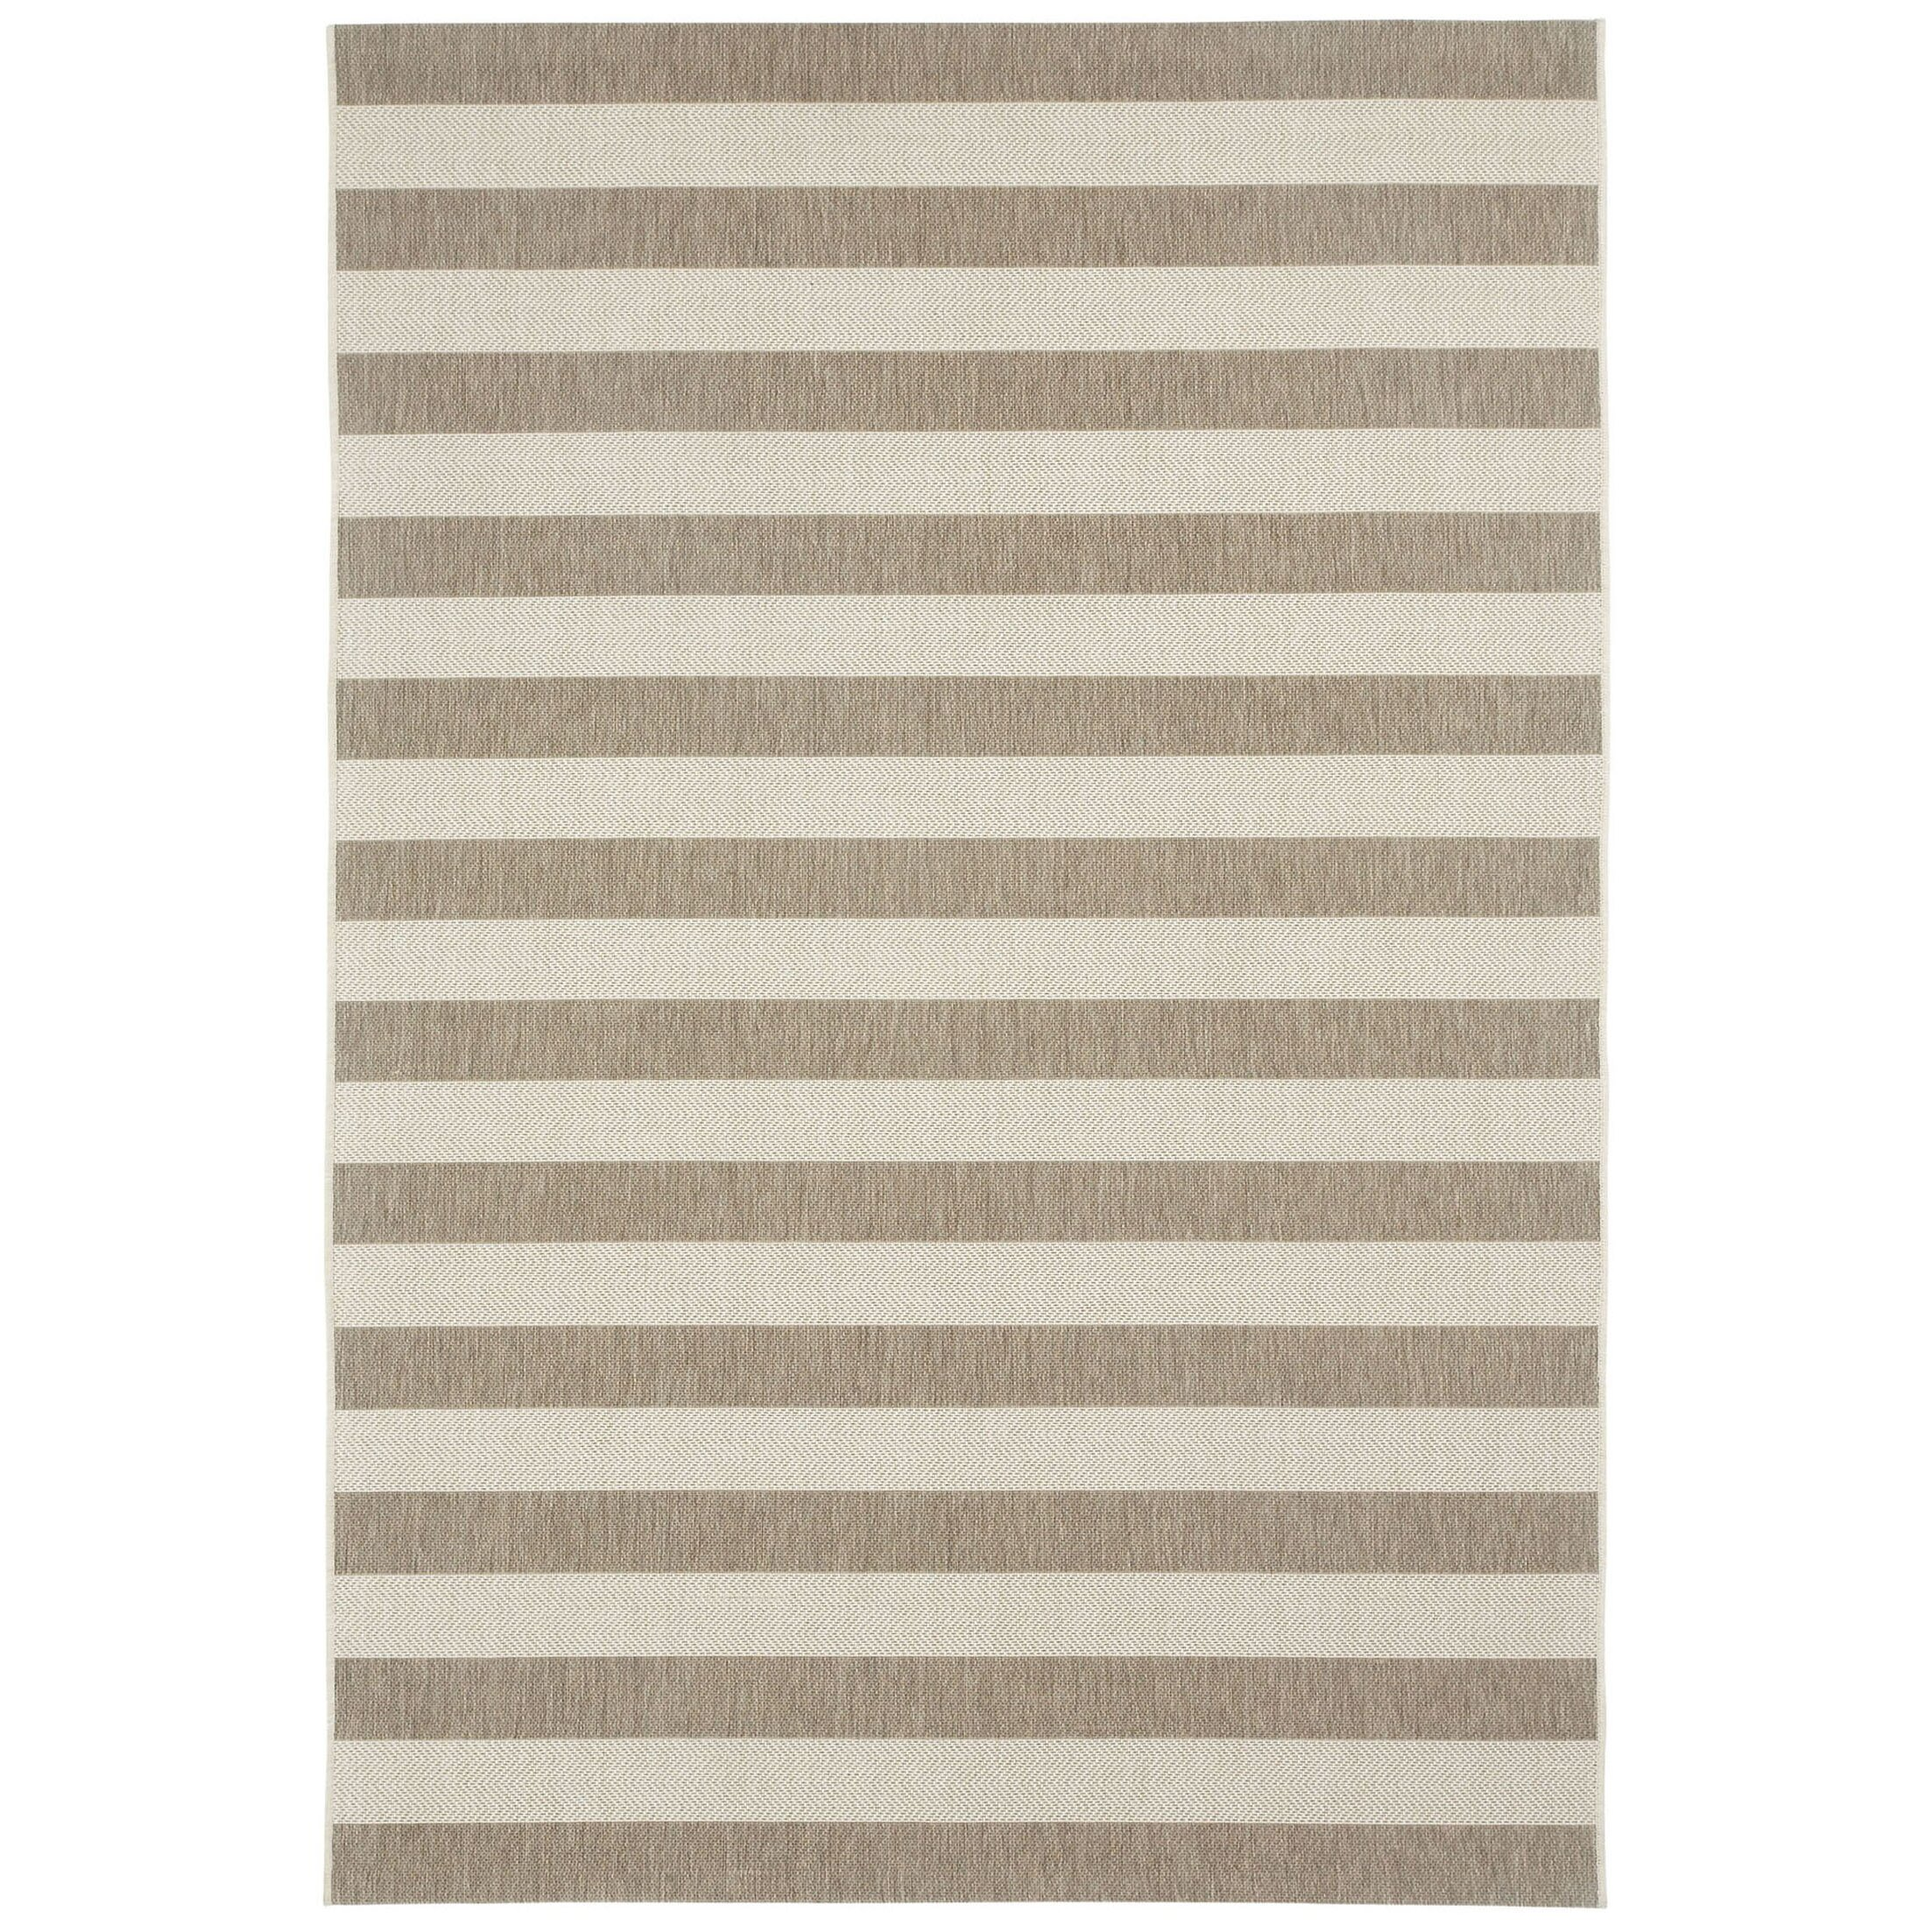 Capel Elsinore Wheat Beige Striped Outdoor Area Rug